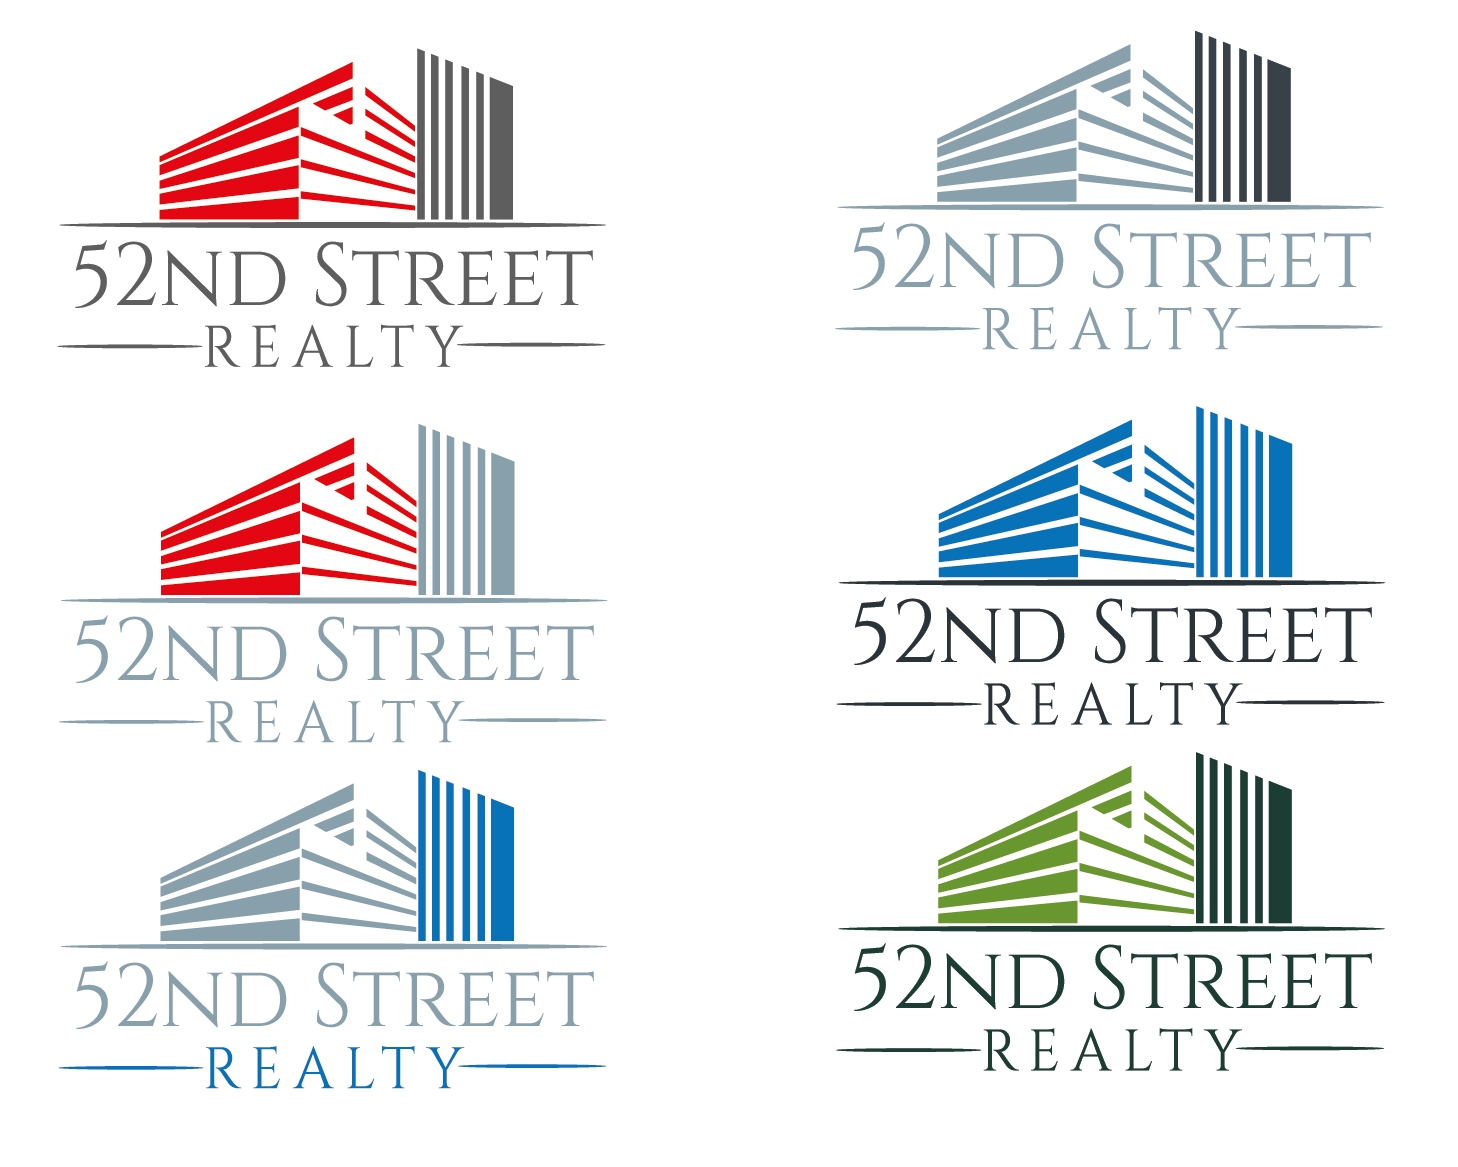 Logo Design by VENTSISLAV KOVACHEV - Entry No. 99 in the Logo Design Contest 52nd Street Realty Logo Design.